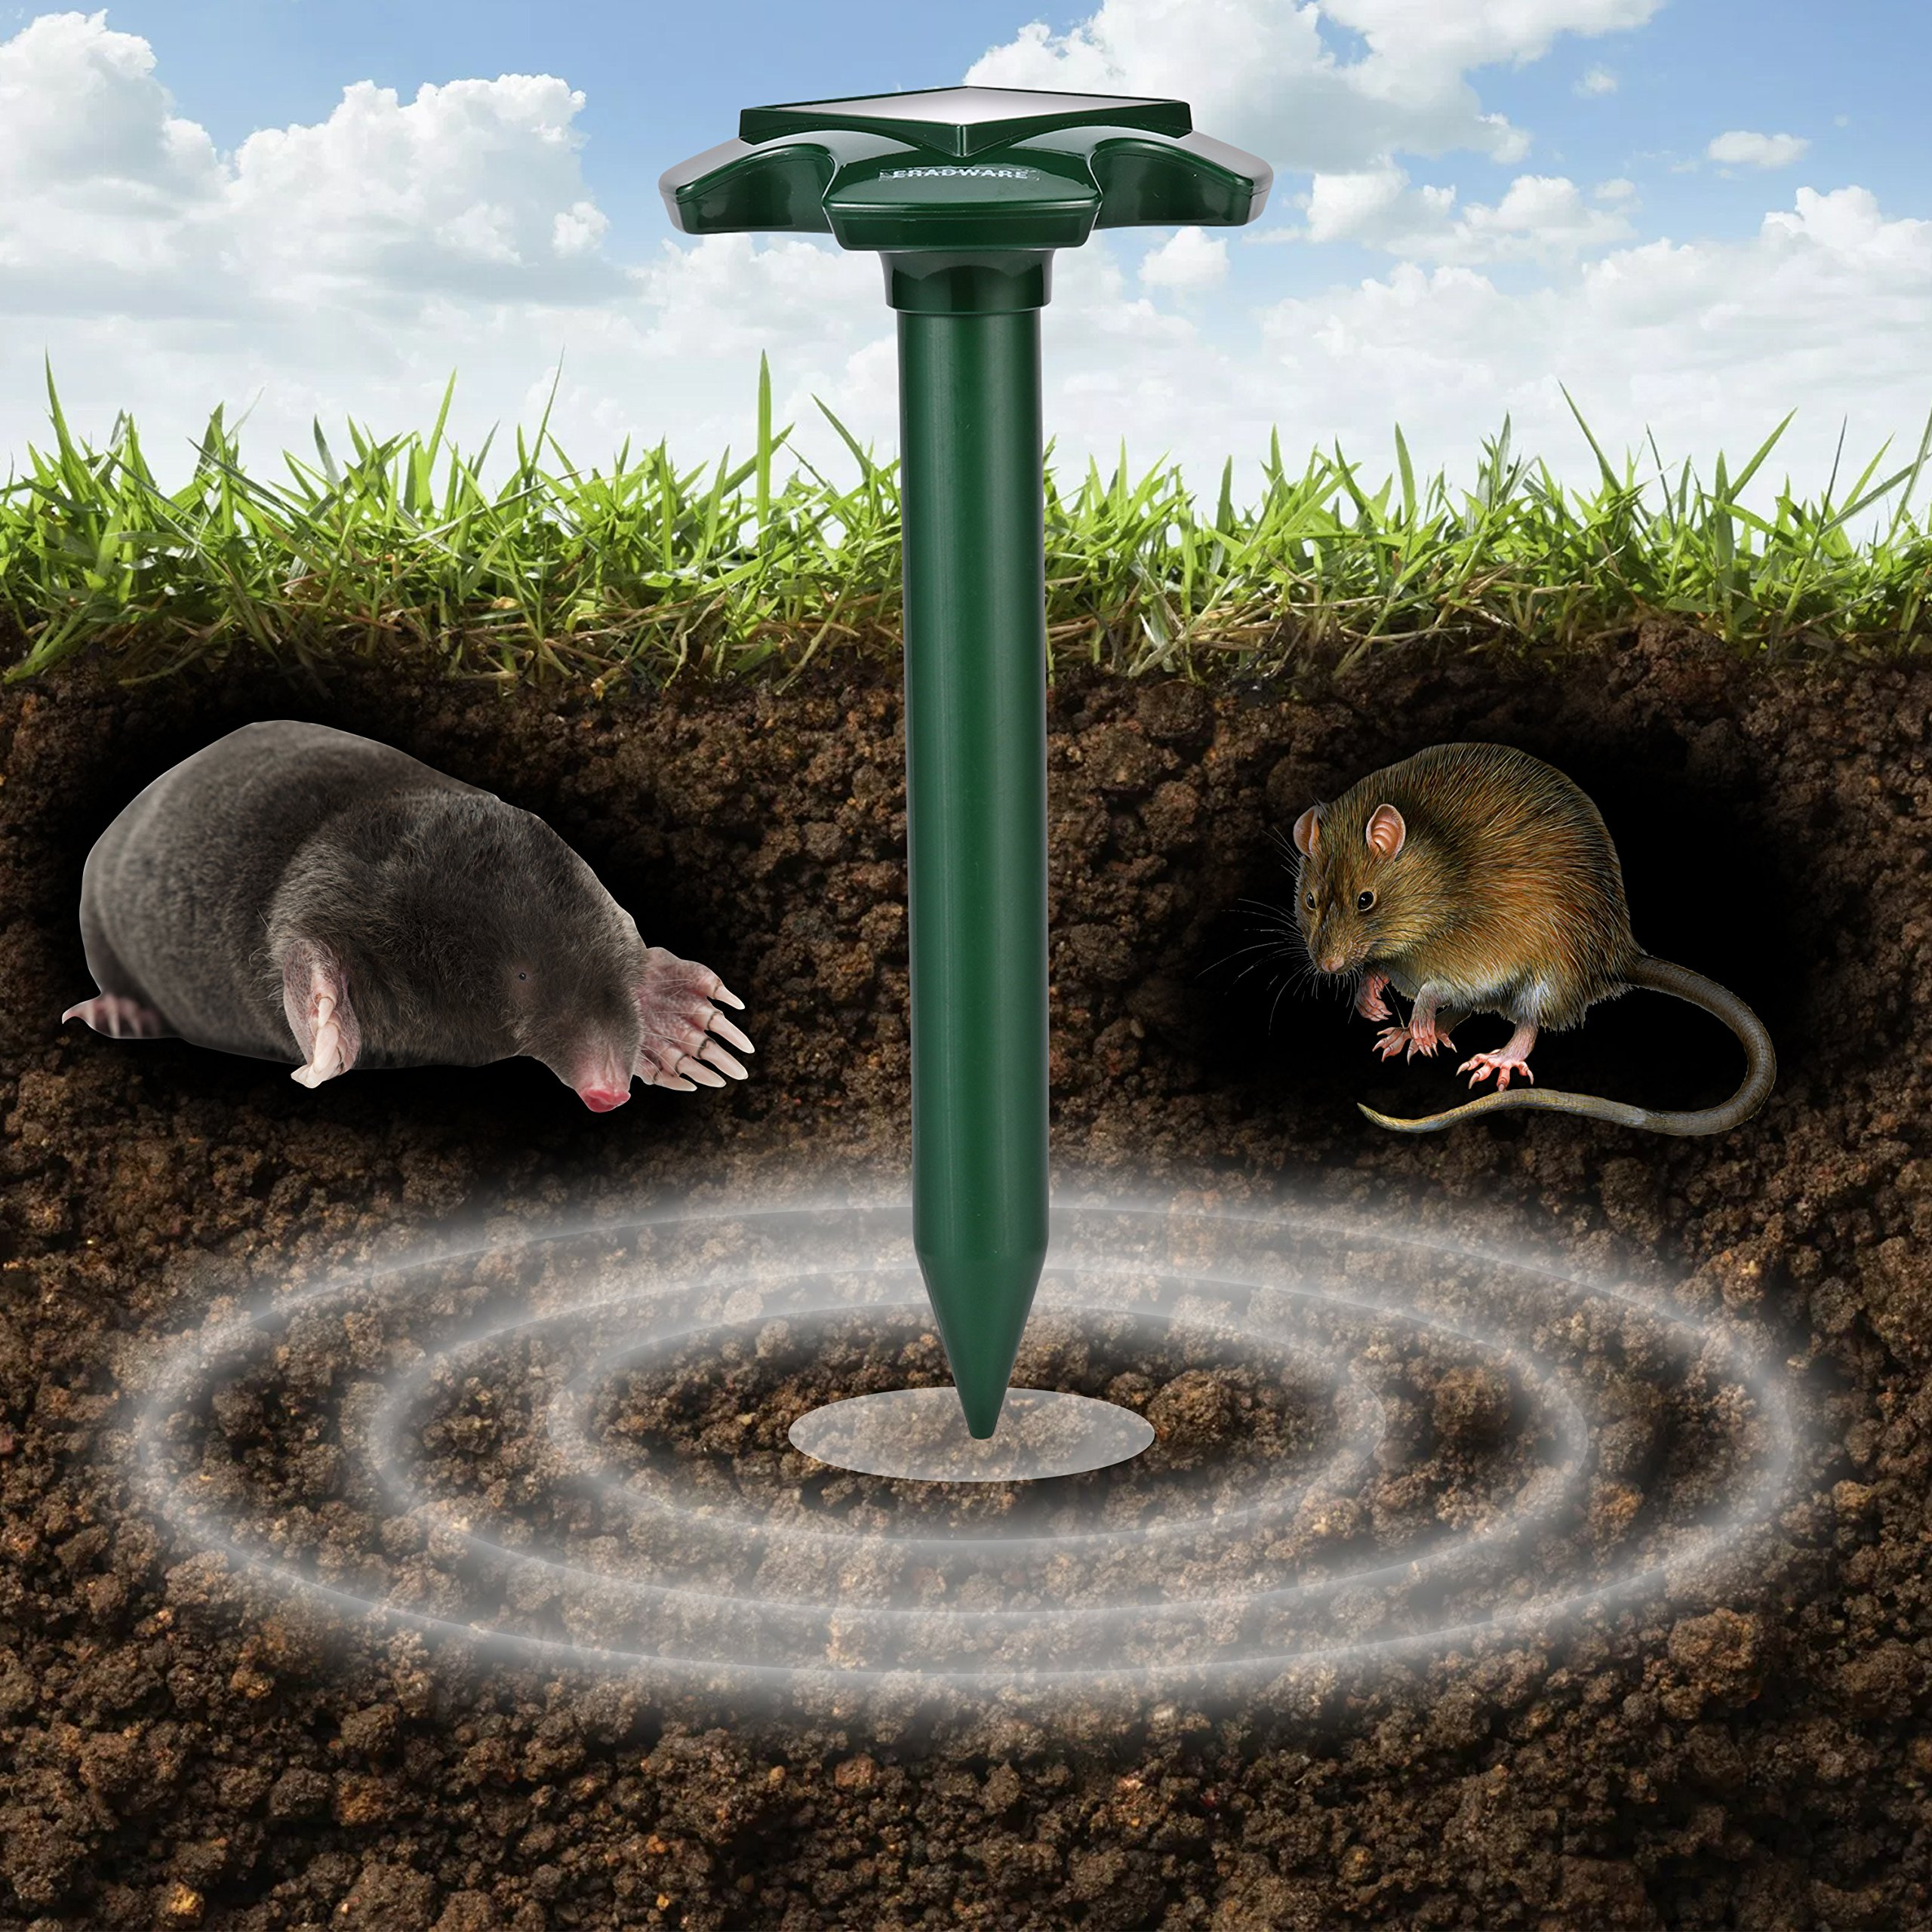 Eradware Solar Powered Mole Repellent (2 Pack), Ultrasonic Pest Repeller, Vole Rodent Repellant, Also Repels Away Snake Gopher Chipmunk, Use in Outdoor Garden Lawn, Non-toxic Eco-friendly Humane by Eradware (Image #4)